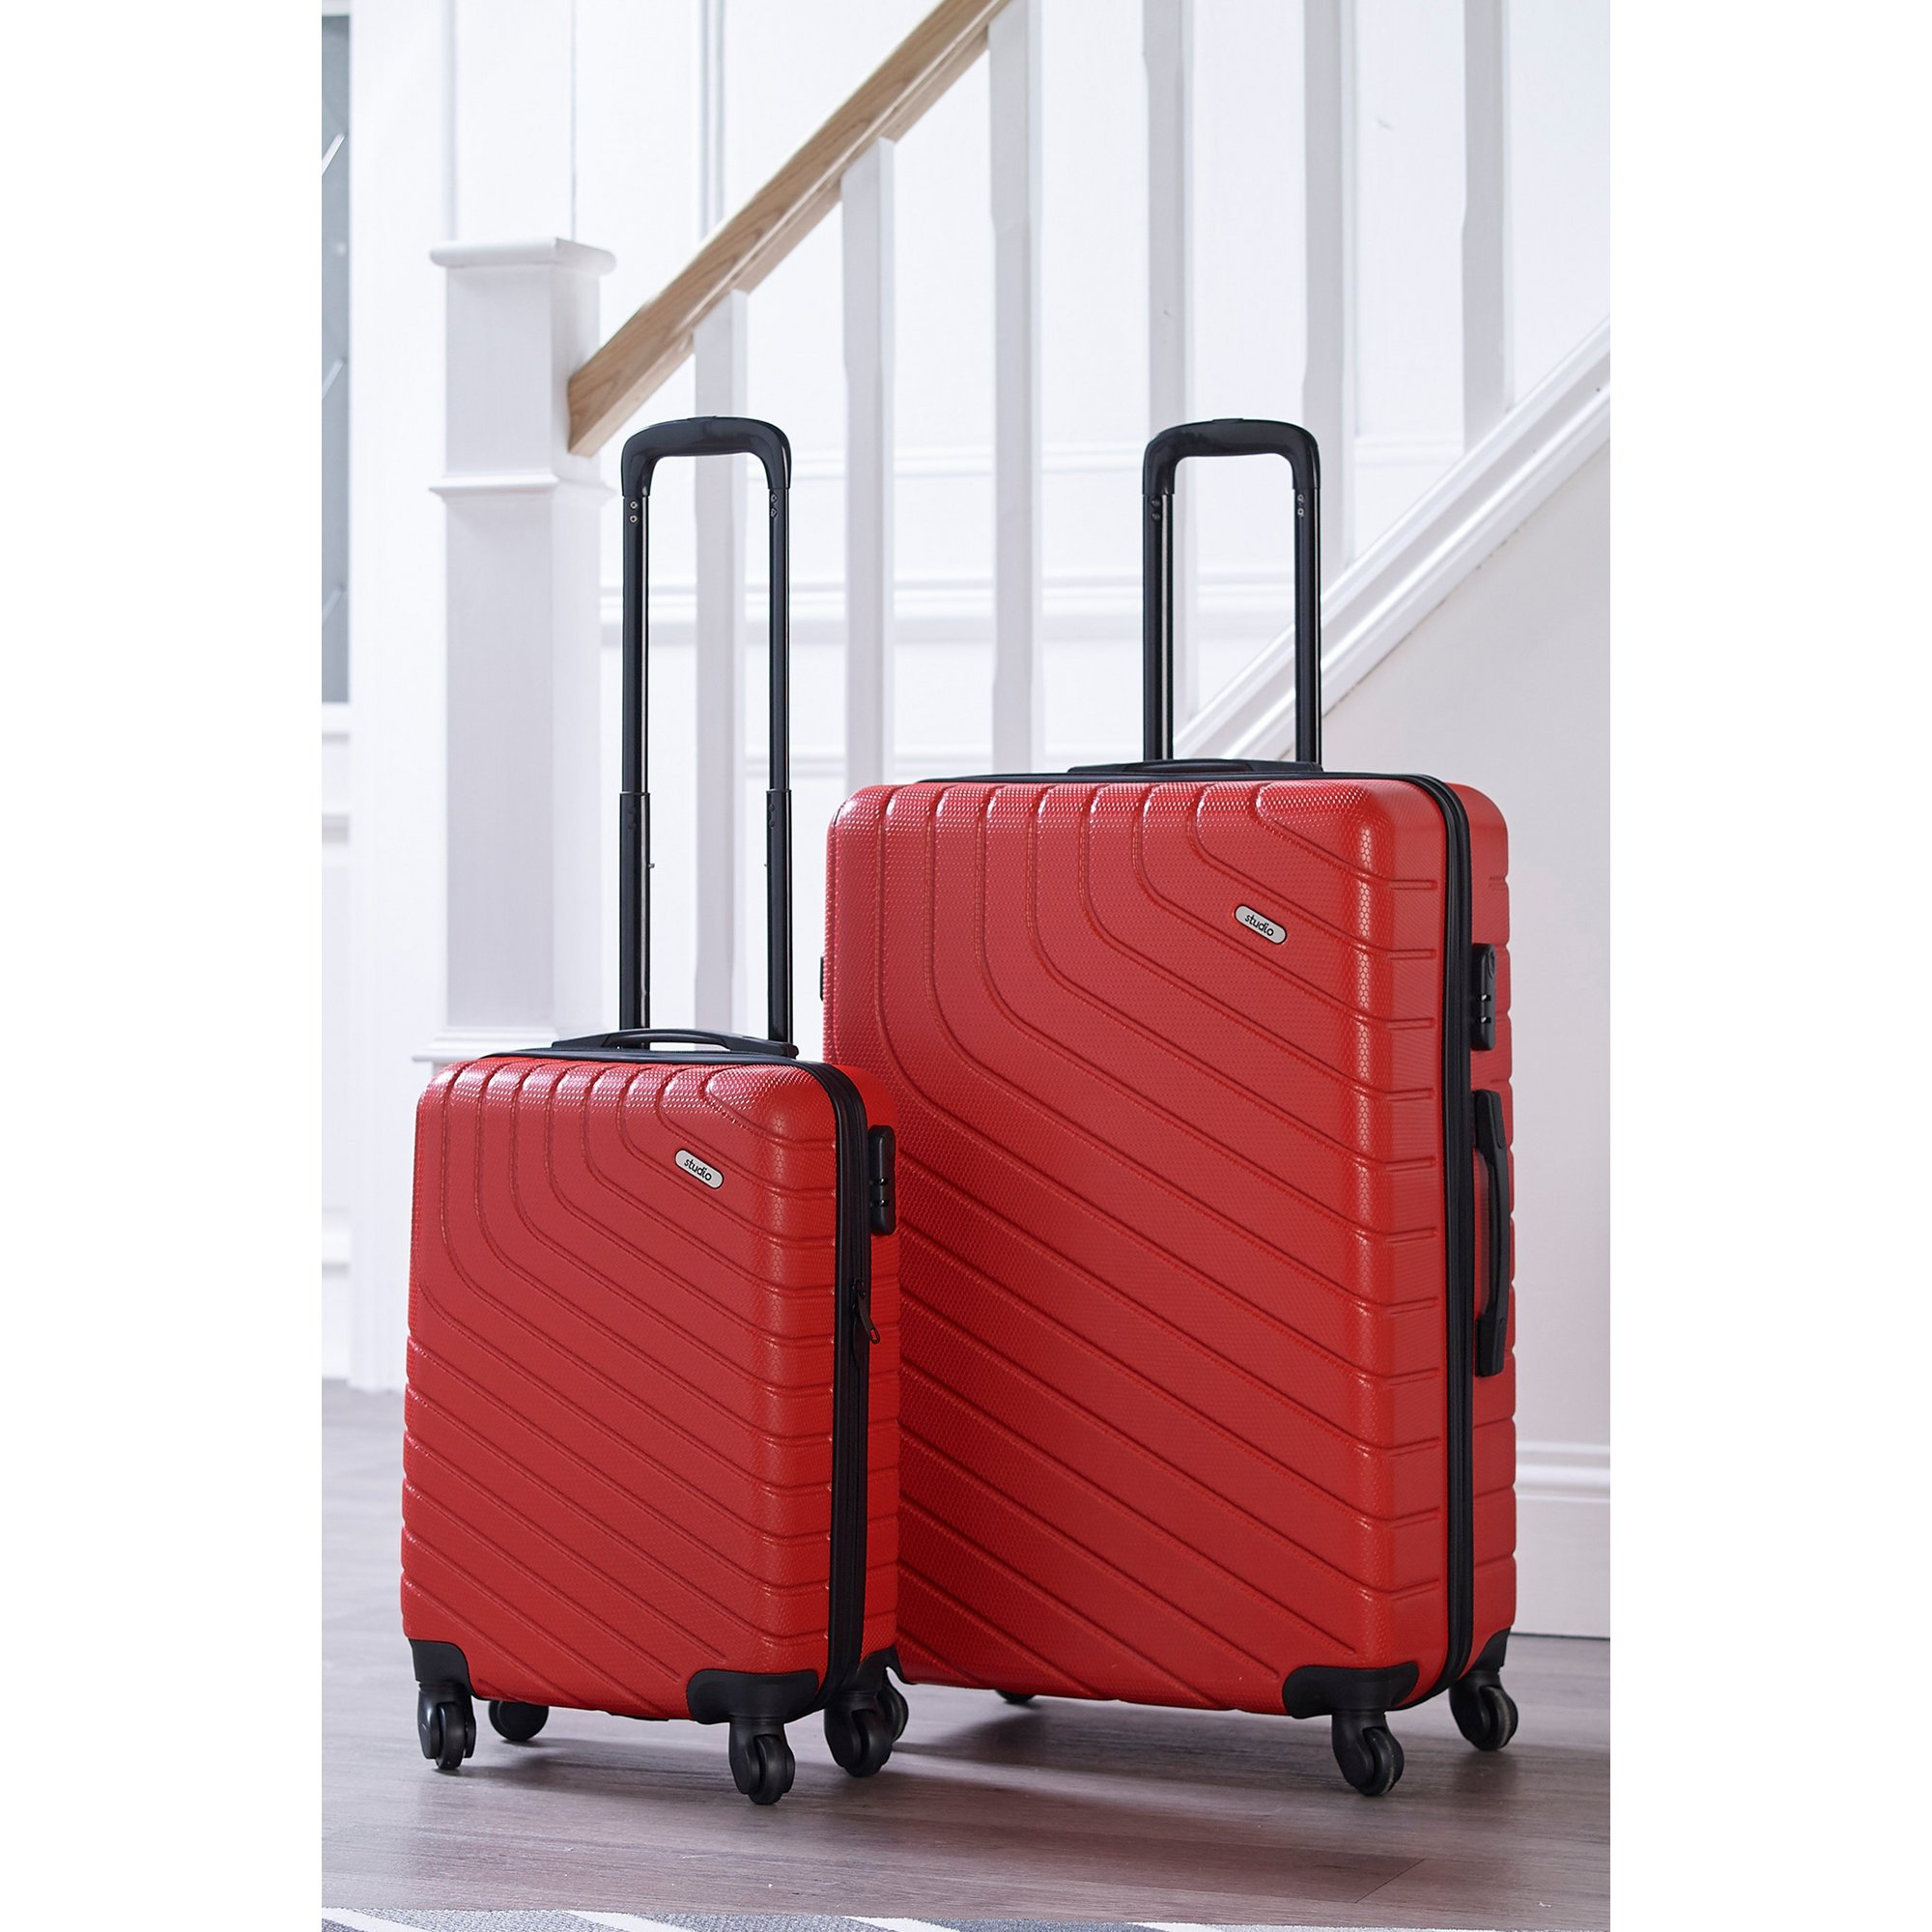 Image of 2-Piece ABS Luggage Set